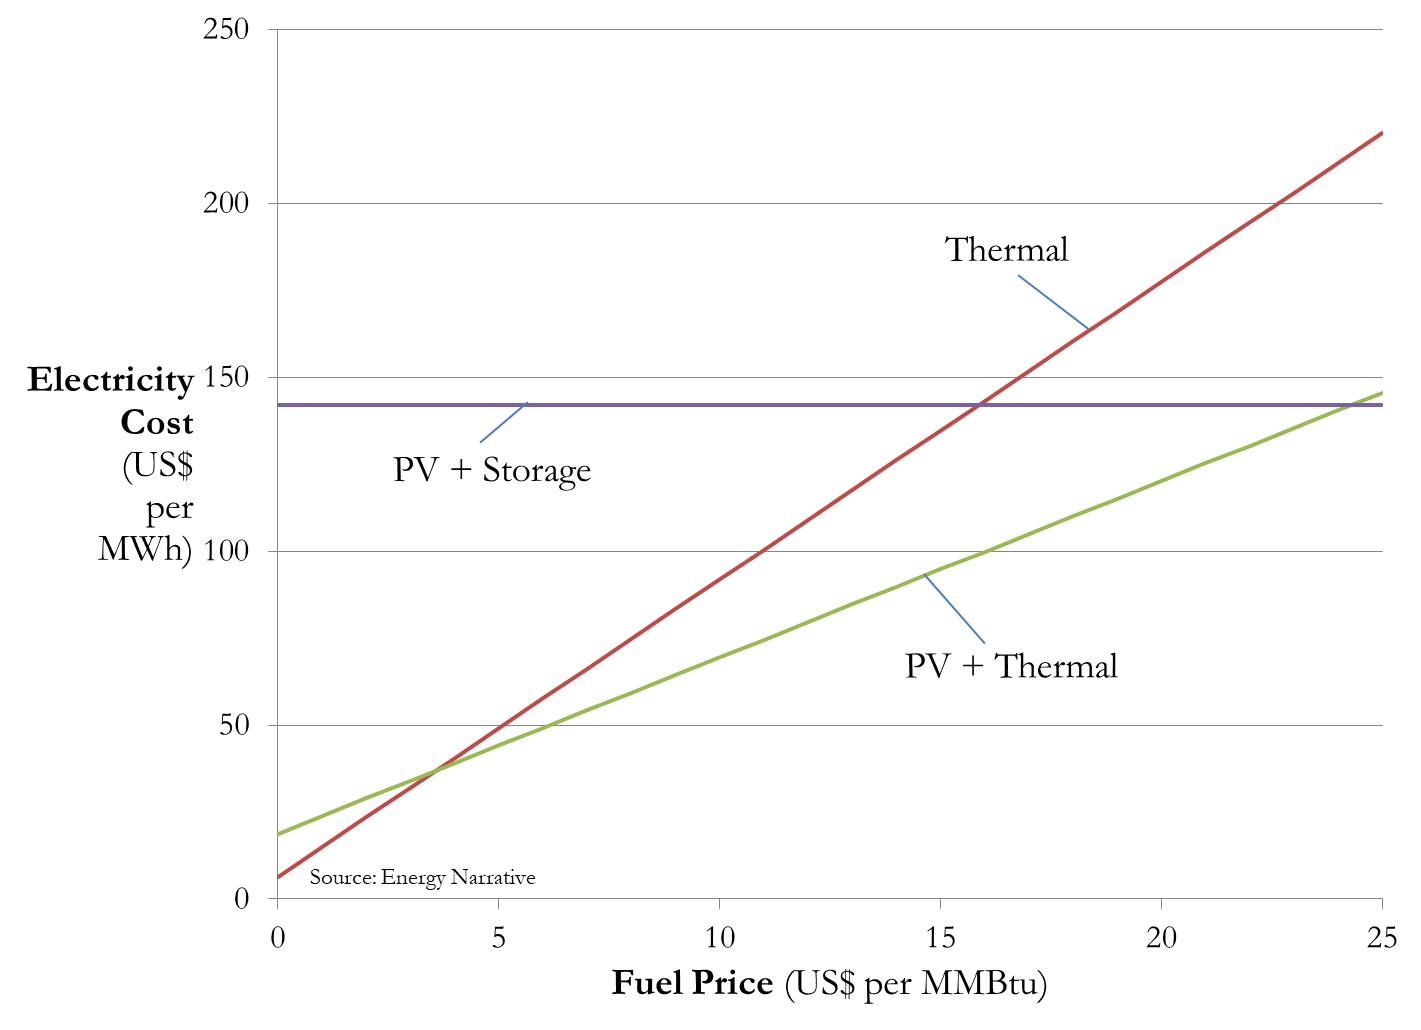 A graphic comparing the cost per MWh for electricity from thermal power plants, PV + thermal backup, and PV + storage